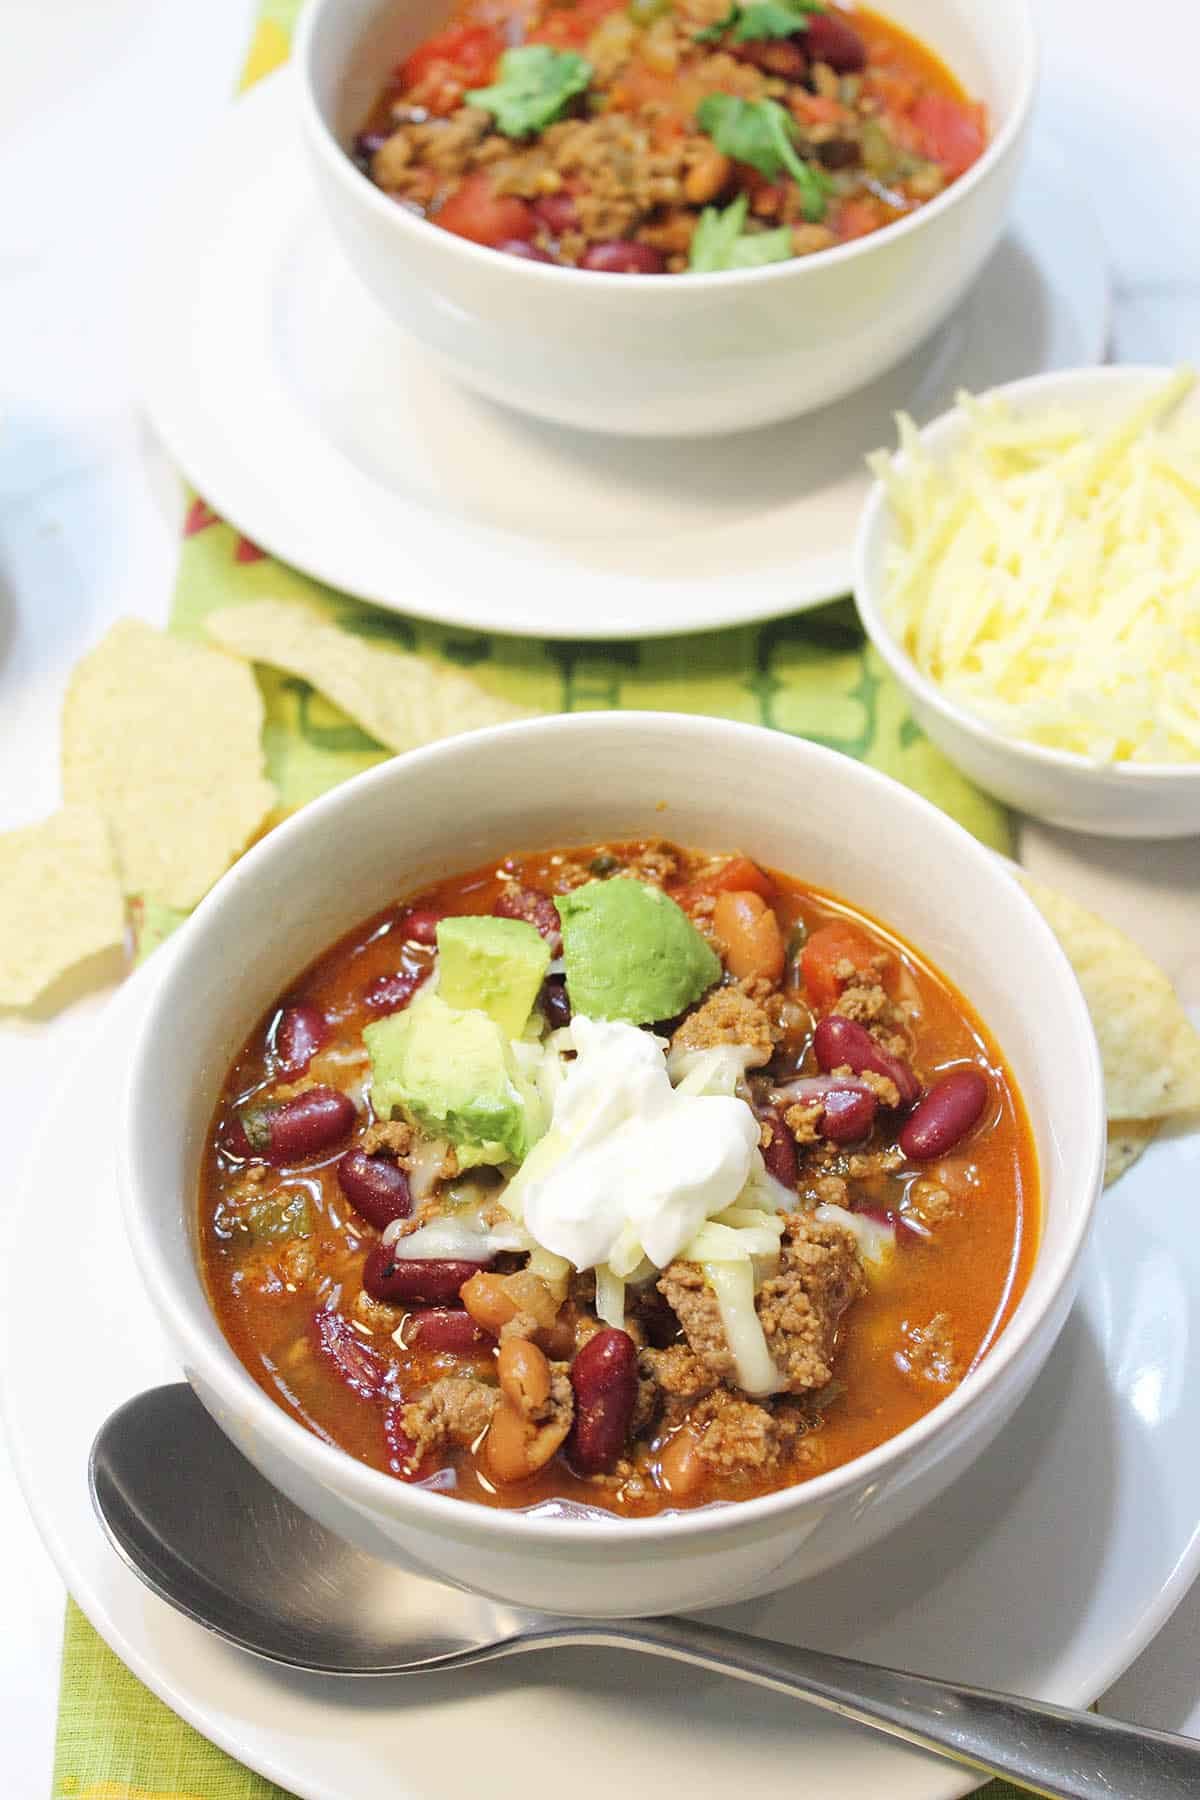 Two bowls of slow cooker Mexican chili on white table garnished with sour cream.